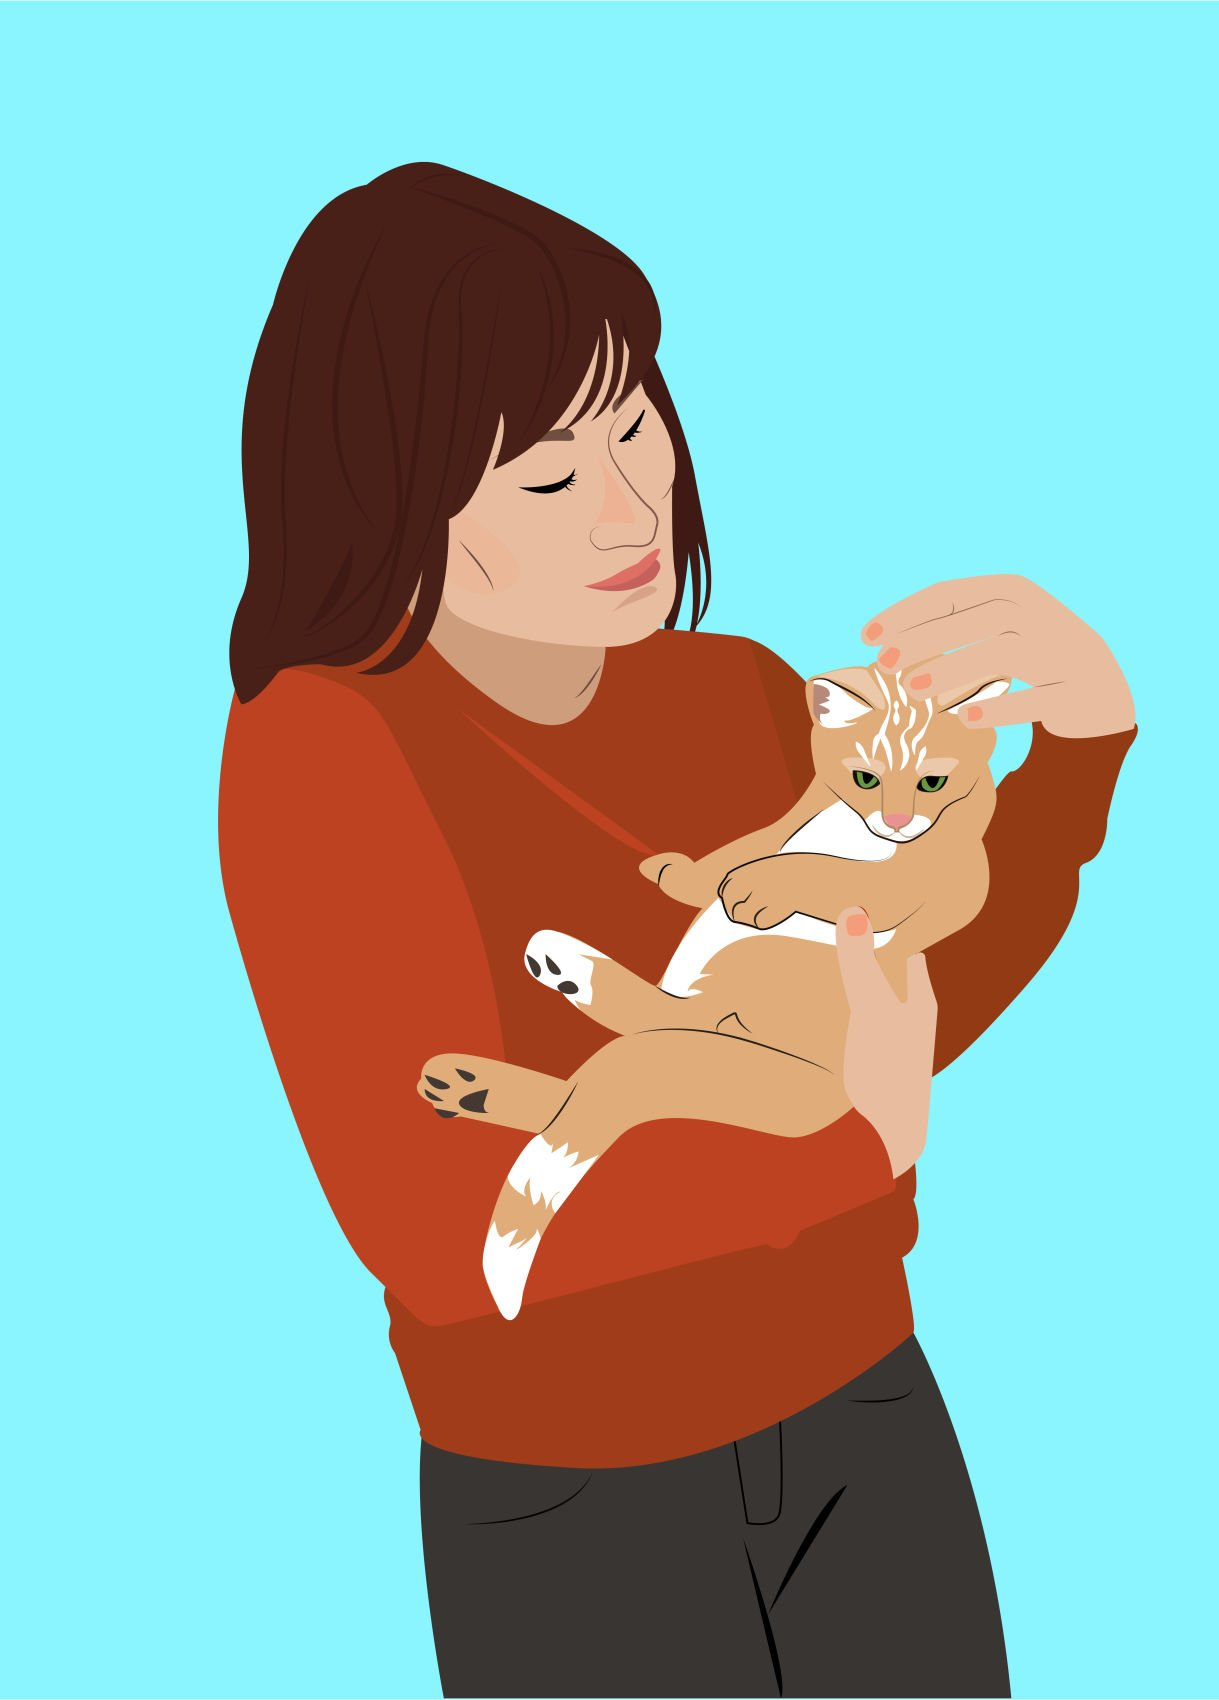 Image of: Register Across The United States Emotional Support Animals esas Have Become Trend Recently Story Came Out About Woman Who Tried To Bring Her Emotional English Forum Switzerland Marks Emotional Support Animals Are Treatment Not Toys Columns